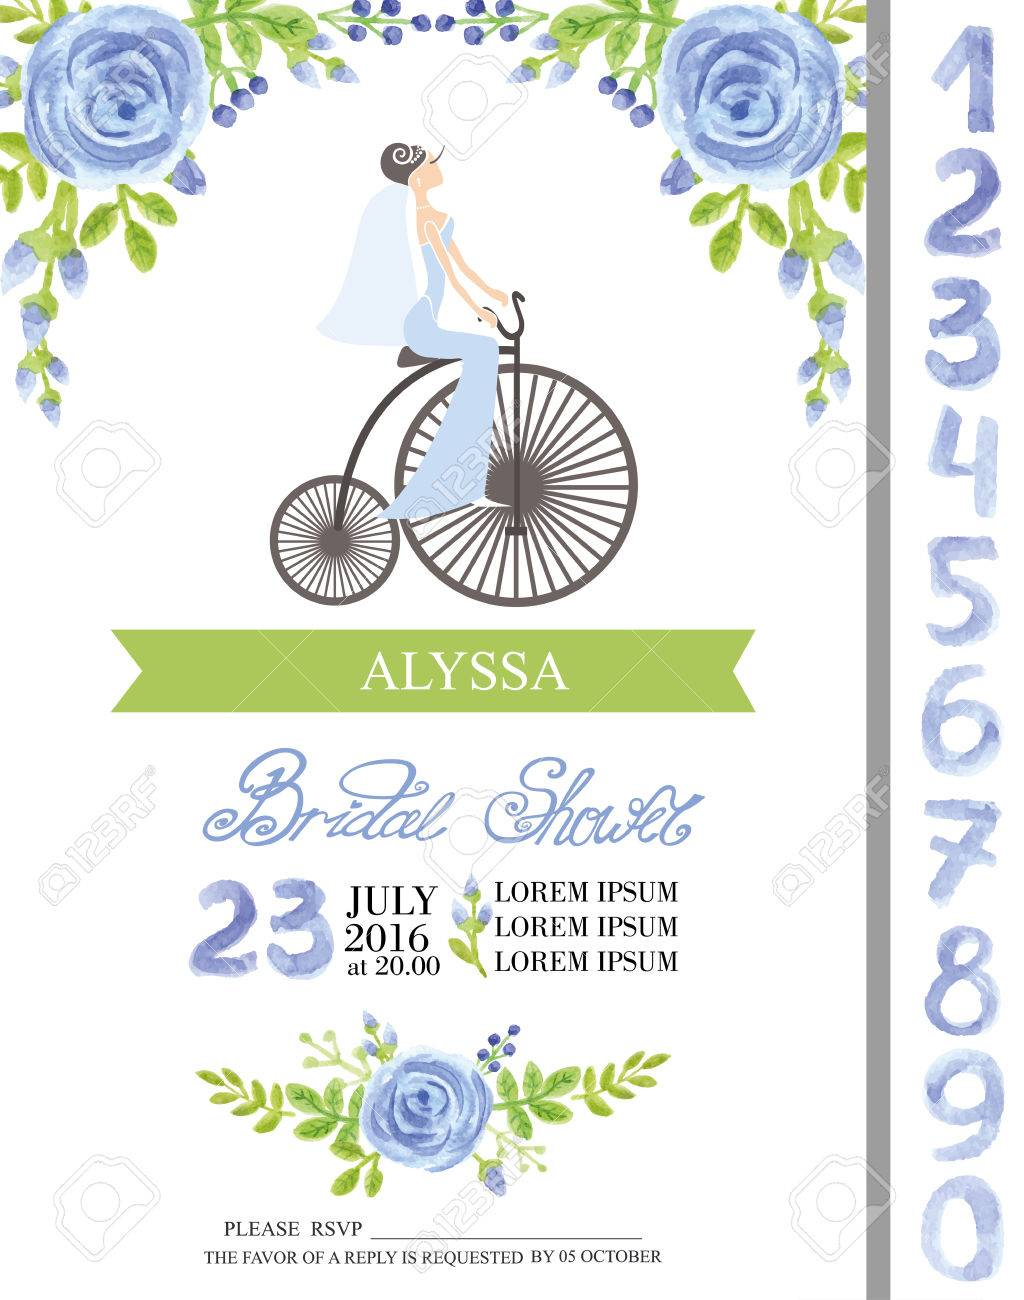 Wedding bridal shower invitation cards with watercolor flowers vector wedding bridal shower invitation cards with watercolor flowers elements cute bride on retro bikenumbers letters cute retro collection with blue filmwisefo